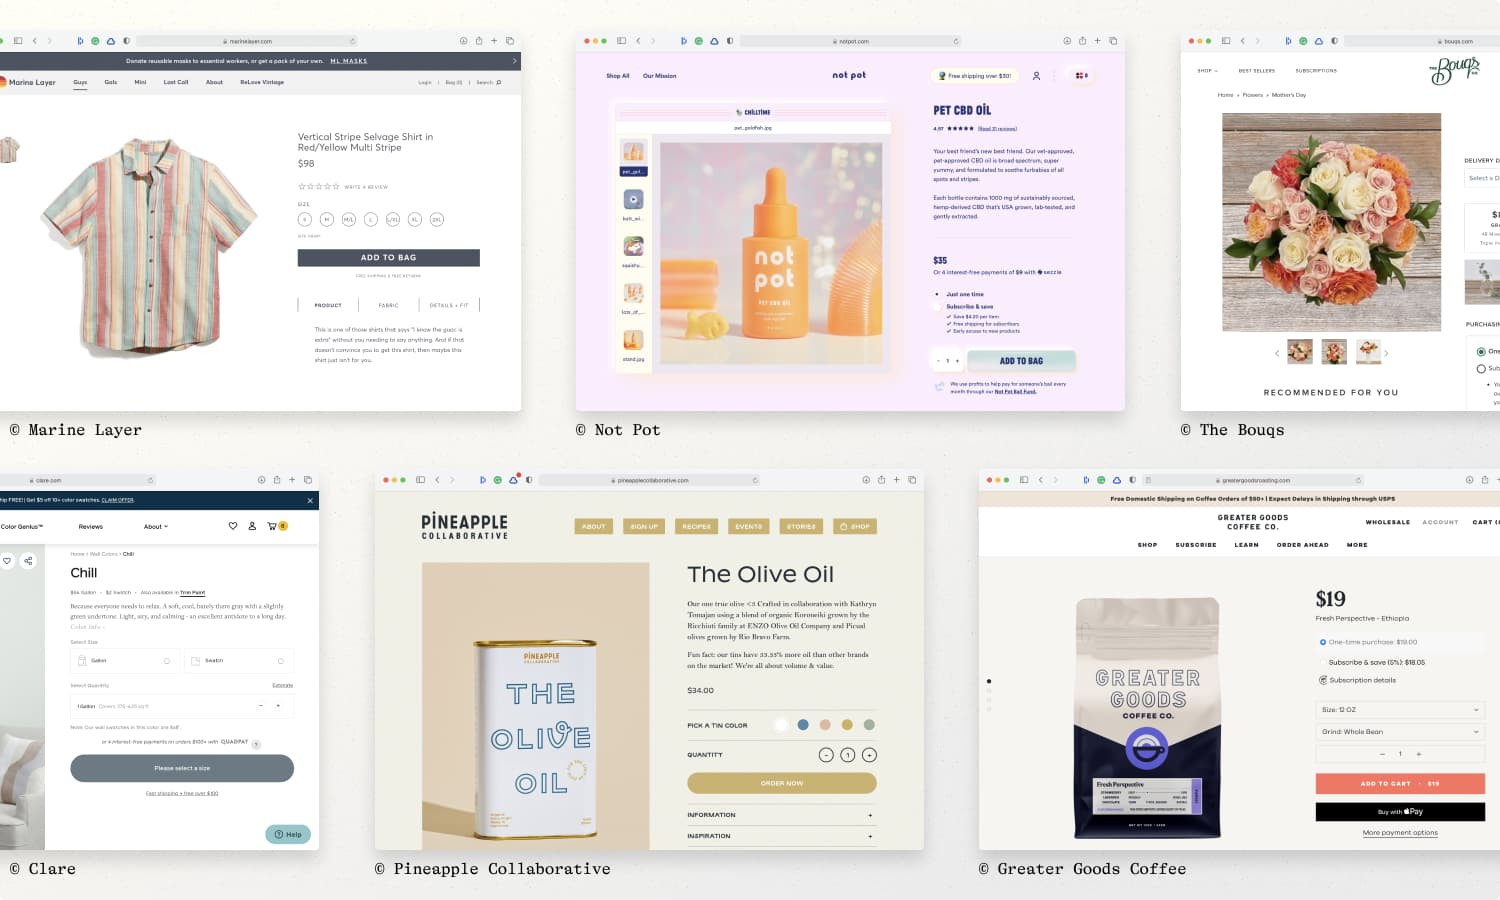 Product page examples from Marine Layer, Not Pot, The Bouqs, Greater Goods Coffee, Pineapple Collaborative, & Clare